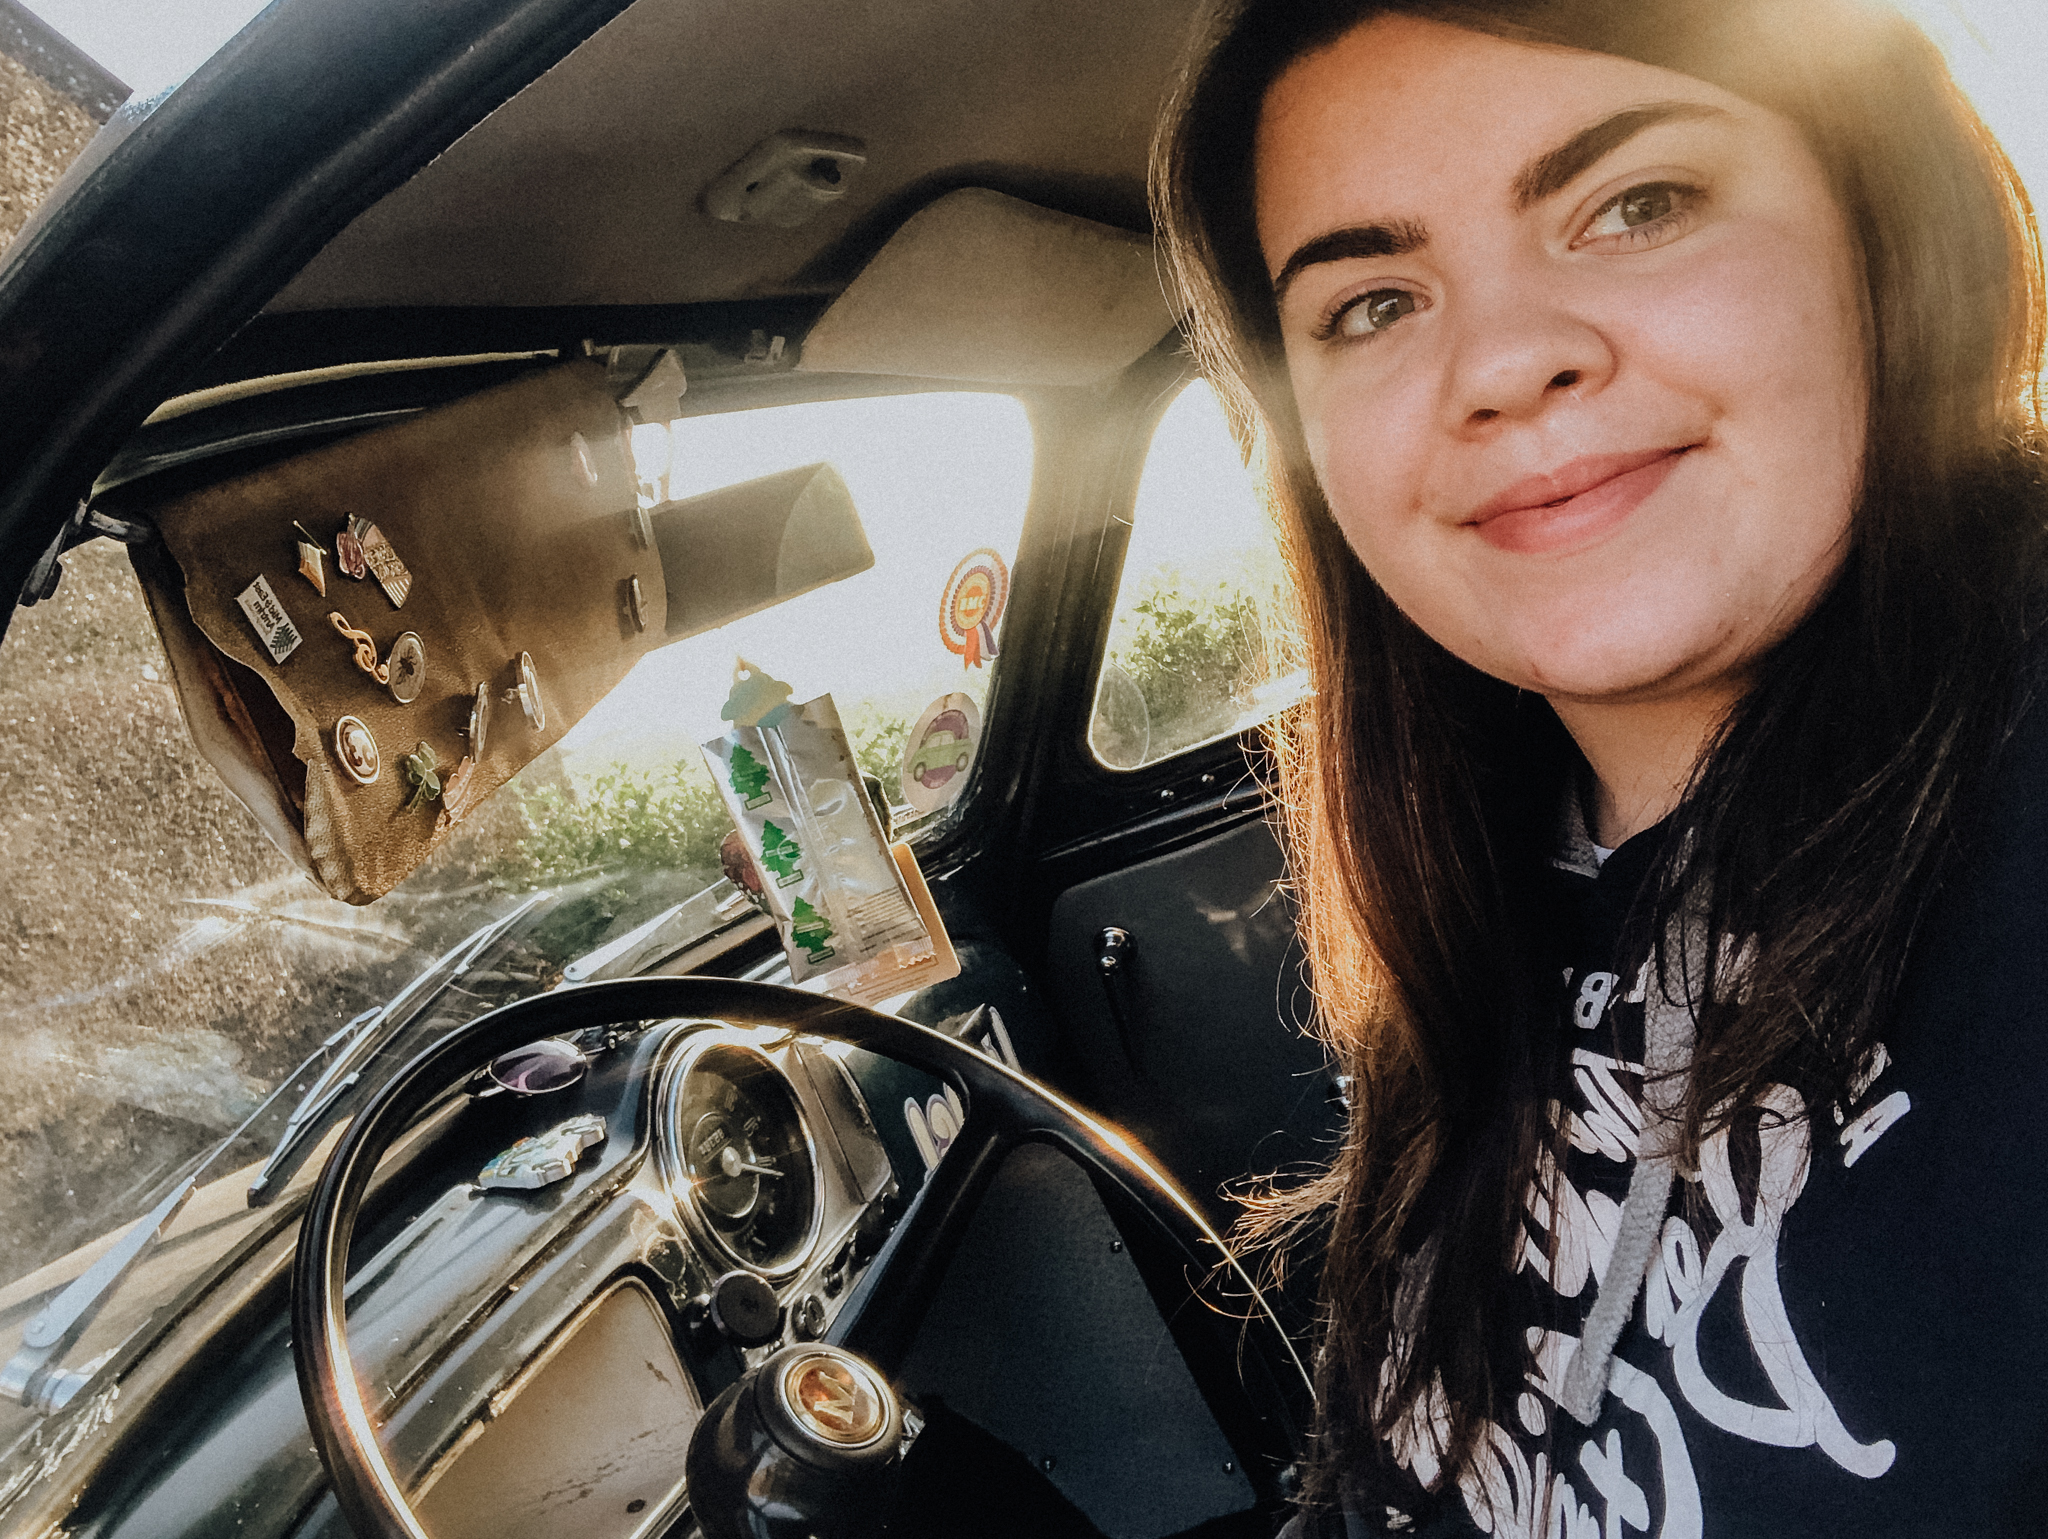 """Women driving change: """"We need to break away from the perceived stuffy Old Man stereotype."""""""